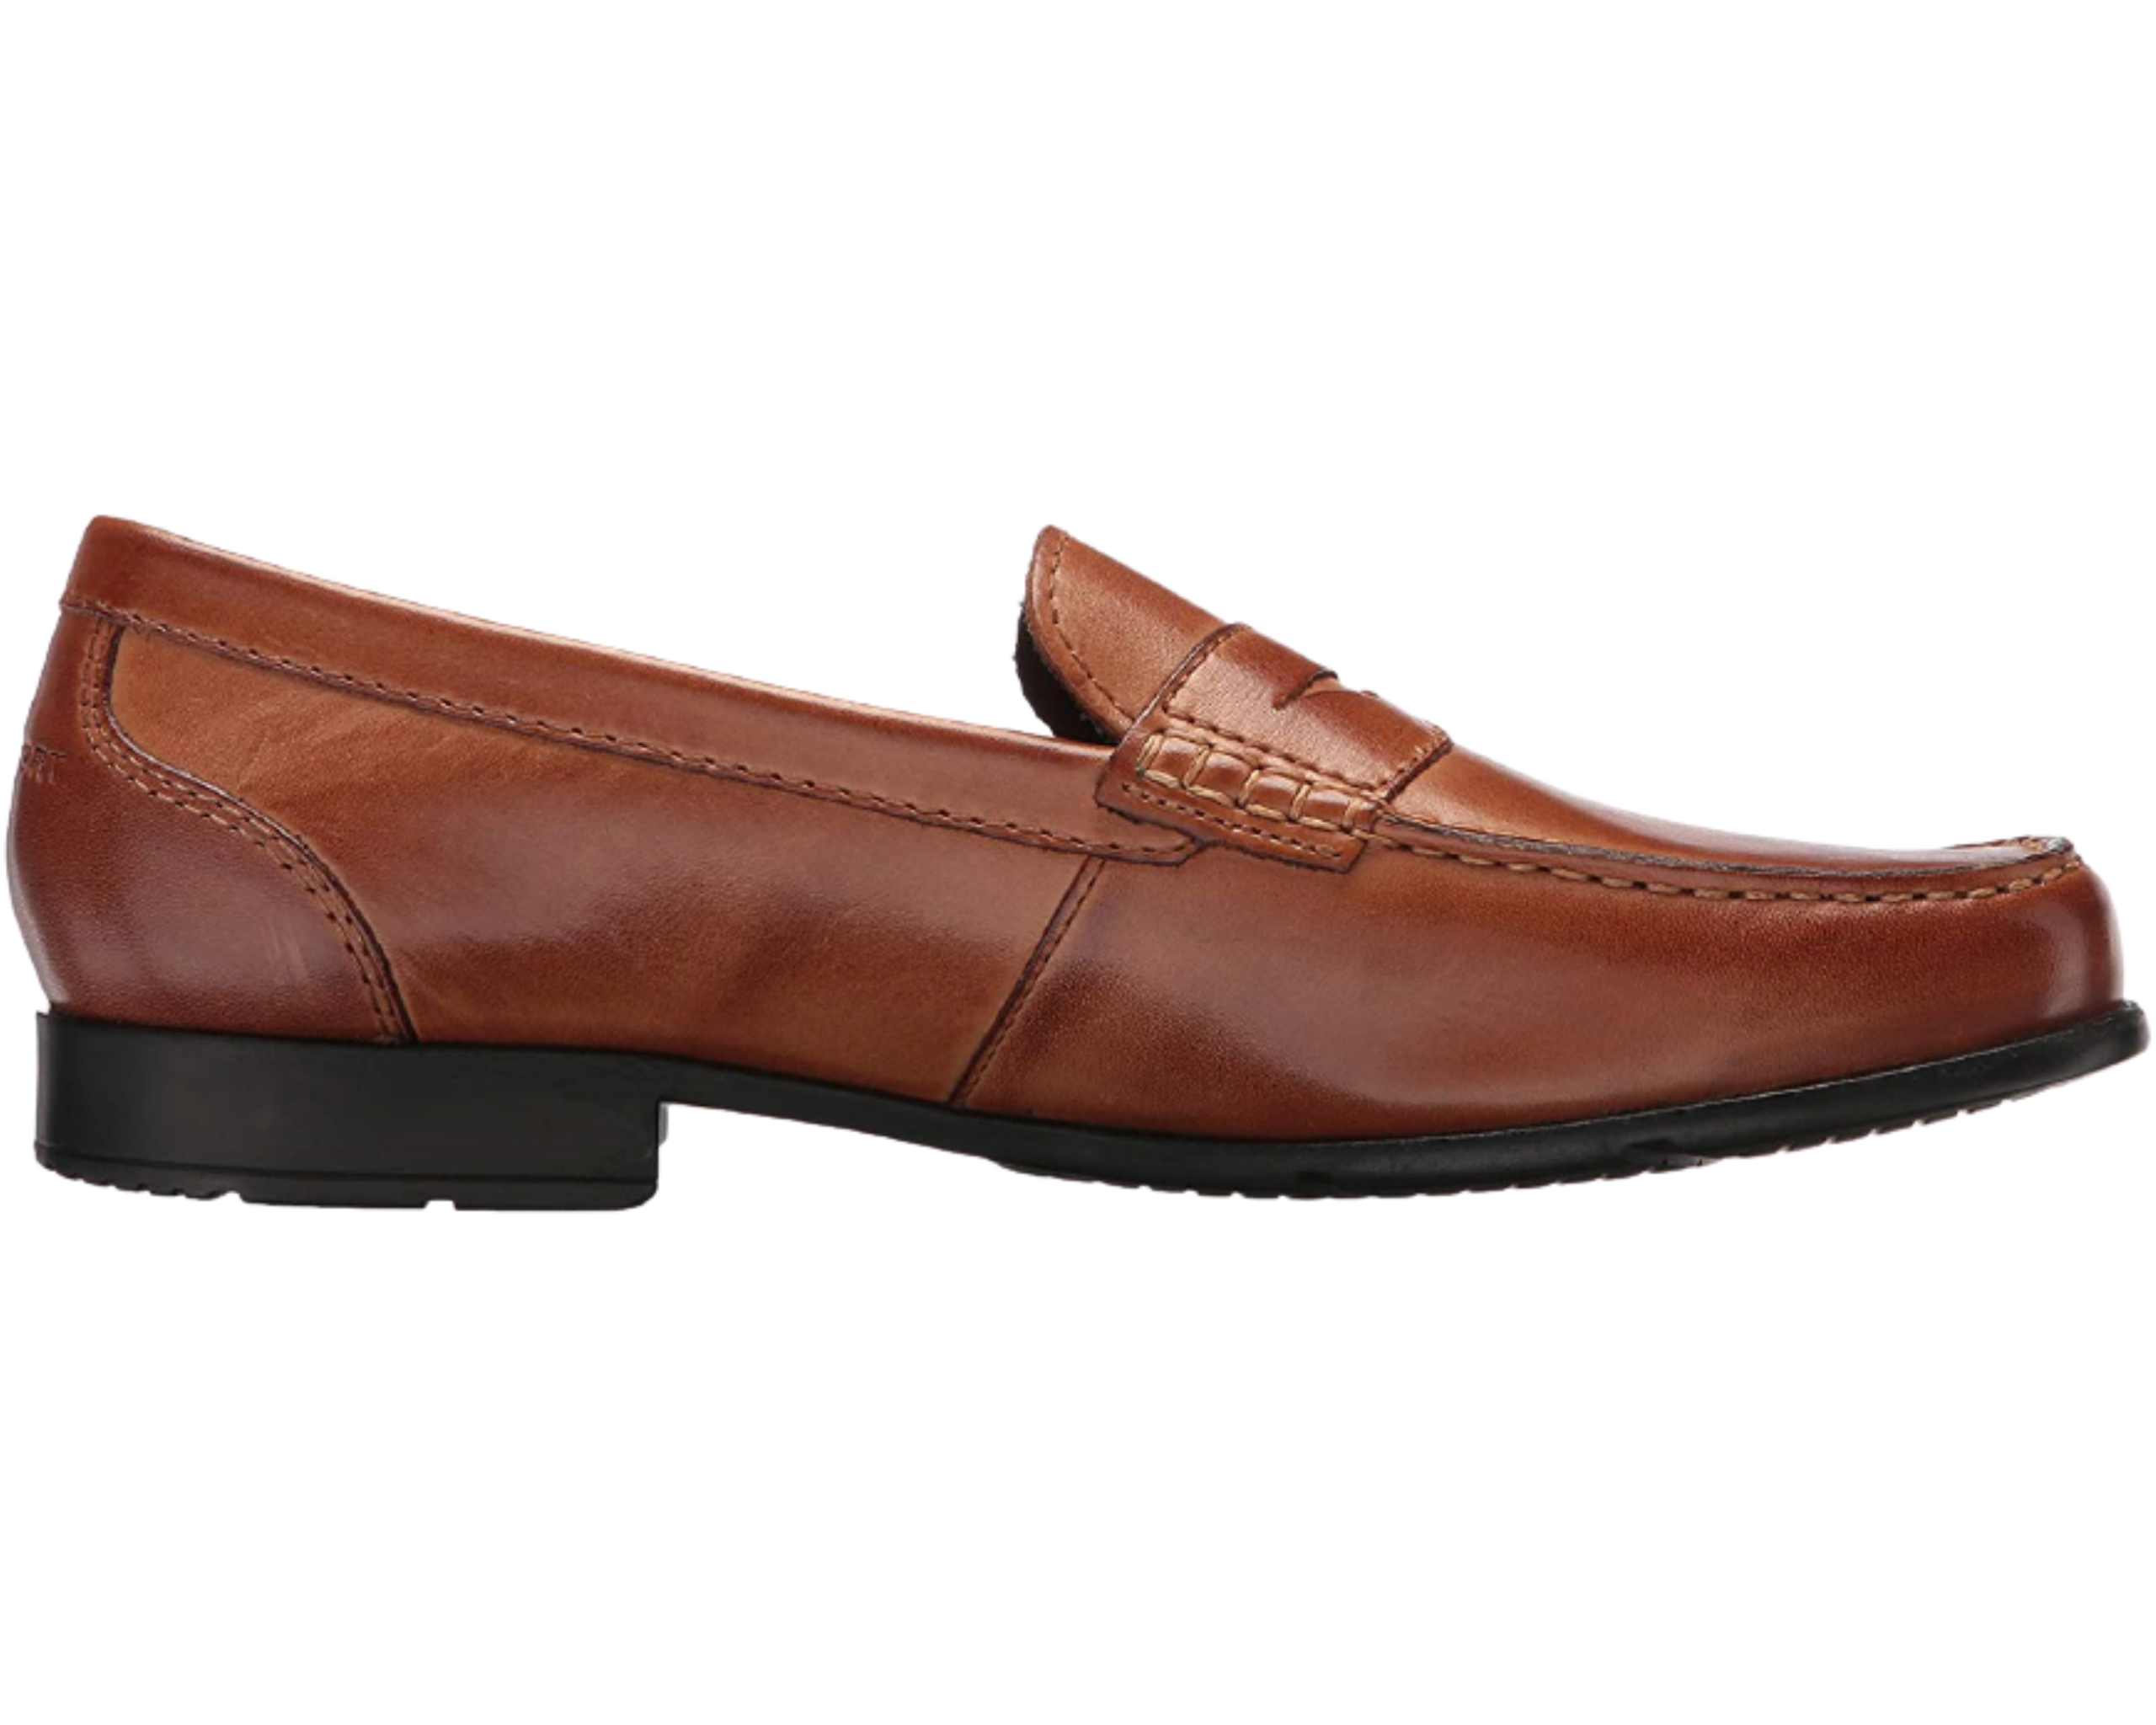 Best leather shoes for men